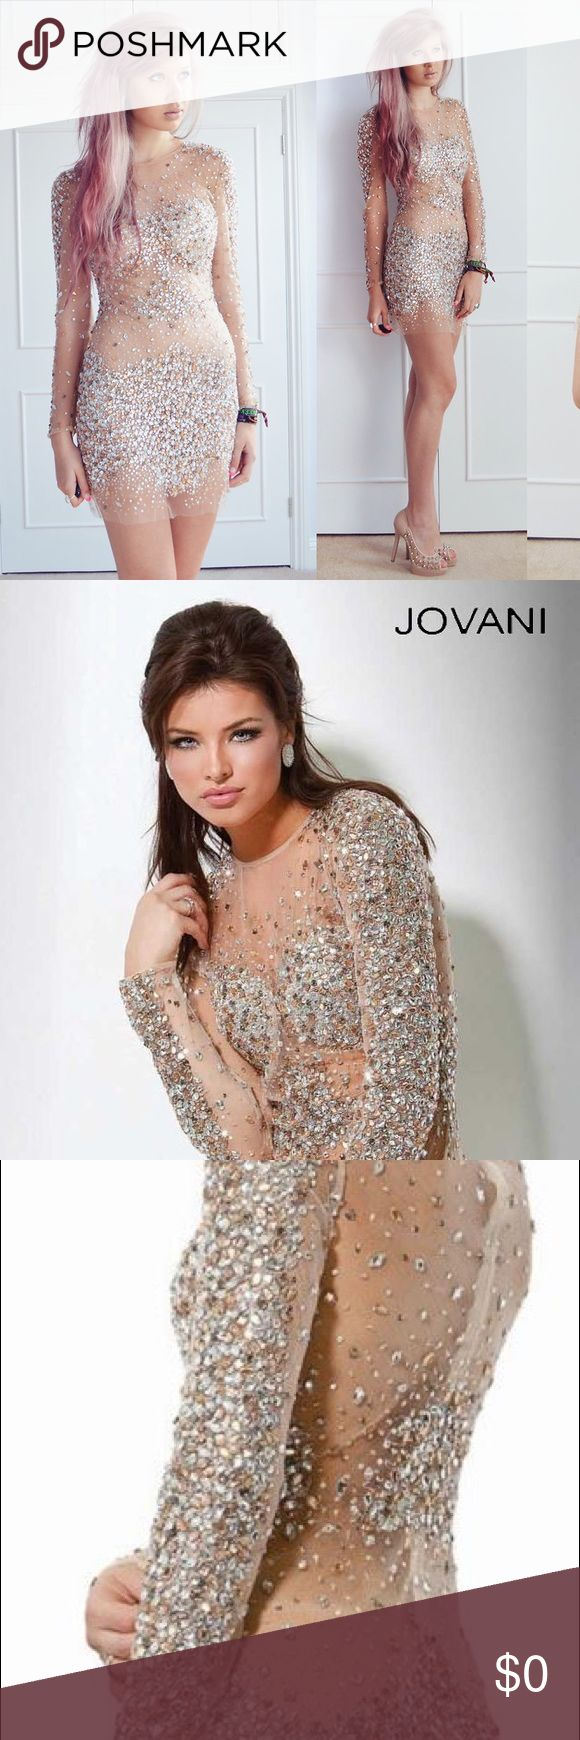 COMING SOON! Jovani Nude Sequin Dress The photos show the exact dress I have. I will be posting photos of the current condition of my dress soon. Thank you! Jovani Dresses Prom